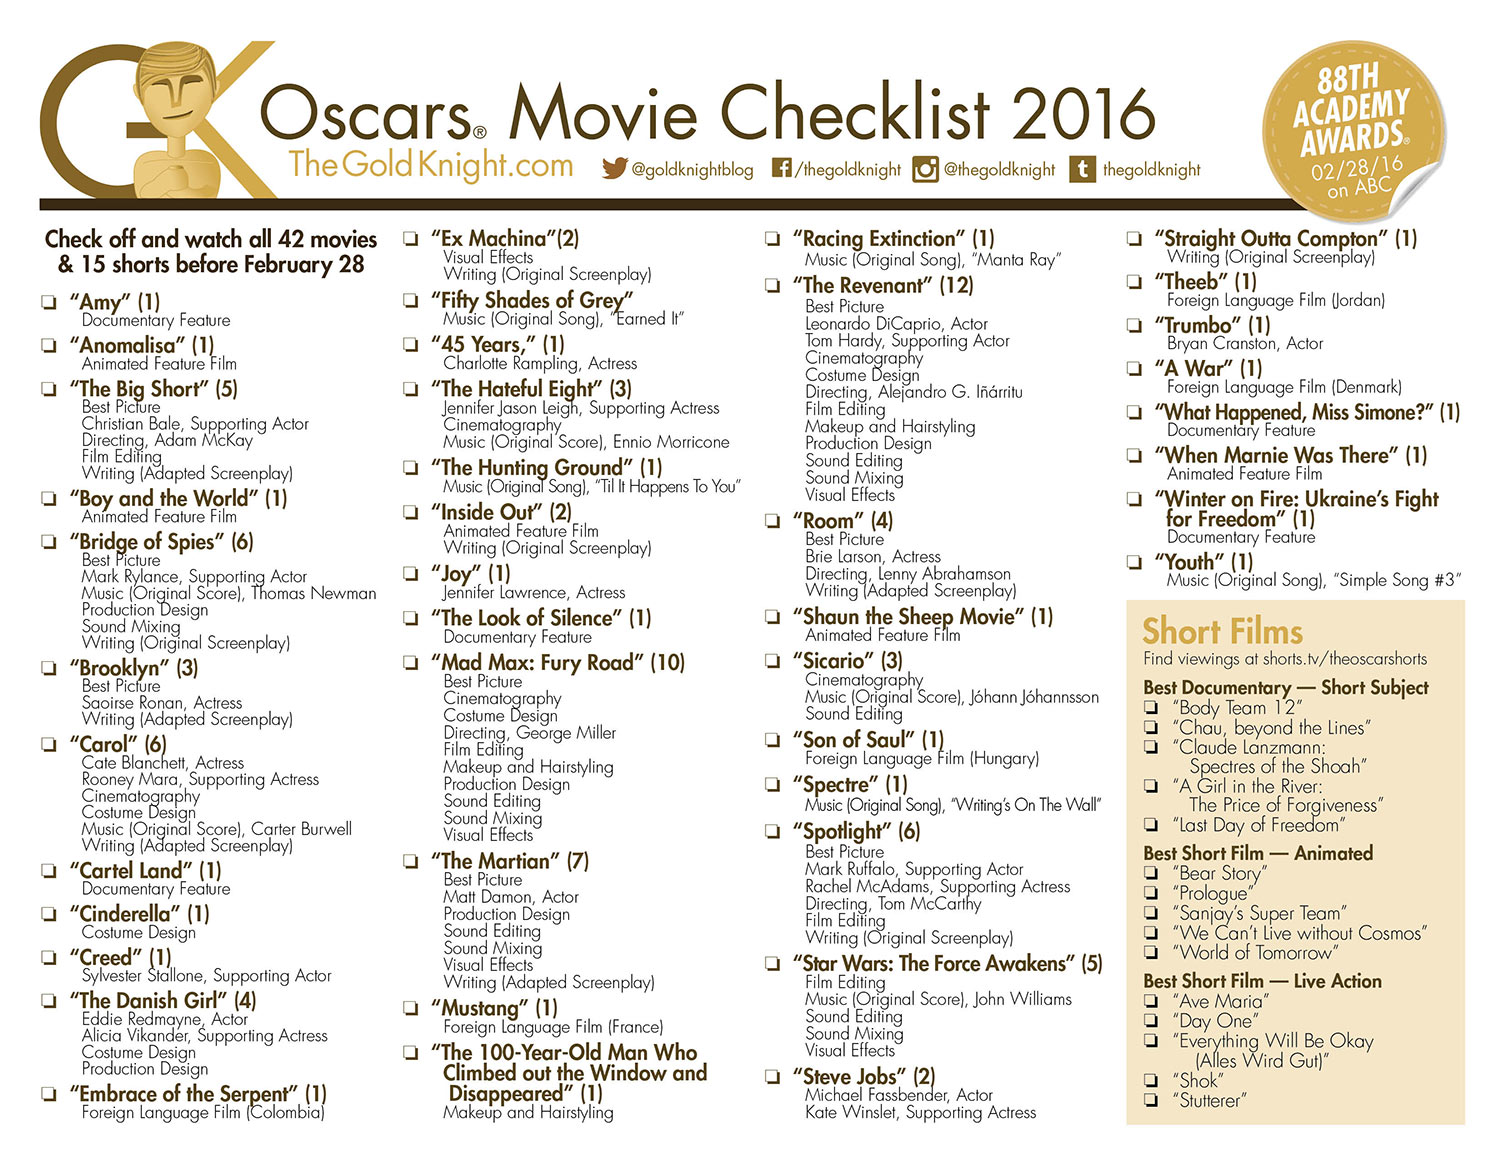 Oscars 2016 Joy Star Jennifer Lawrence Makes History With Academy Award Nomination 34364859 also thegoldknight further Index furthermore The Big Uh Oh At The Oscars further Bridesmaids The Help Among Writers Guild Nominations. on oscar nominations 2016 full list